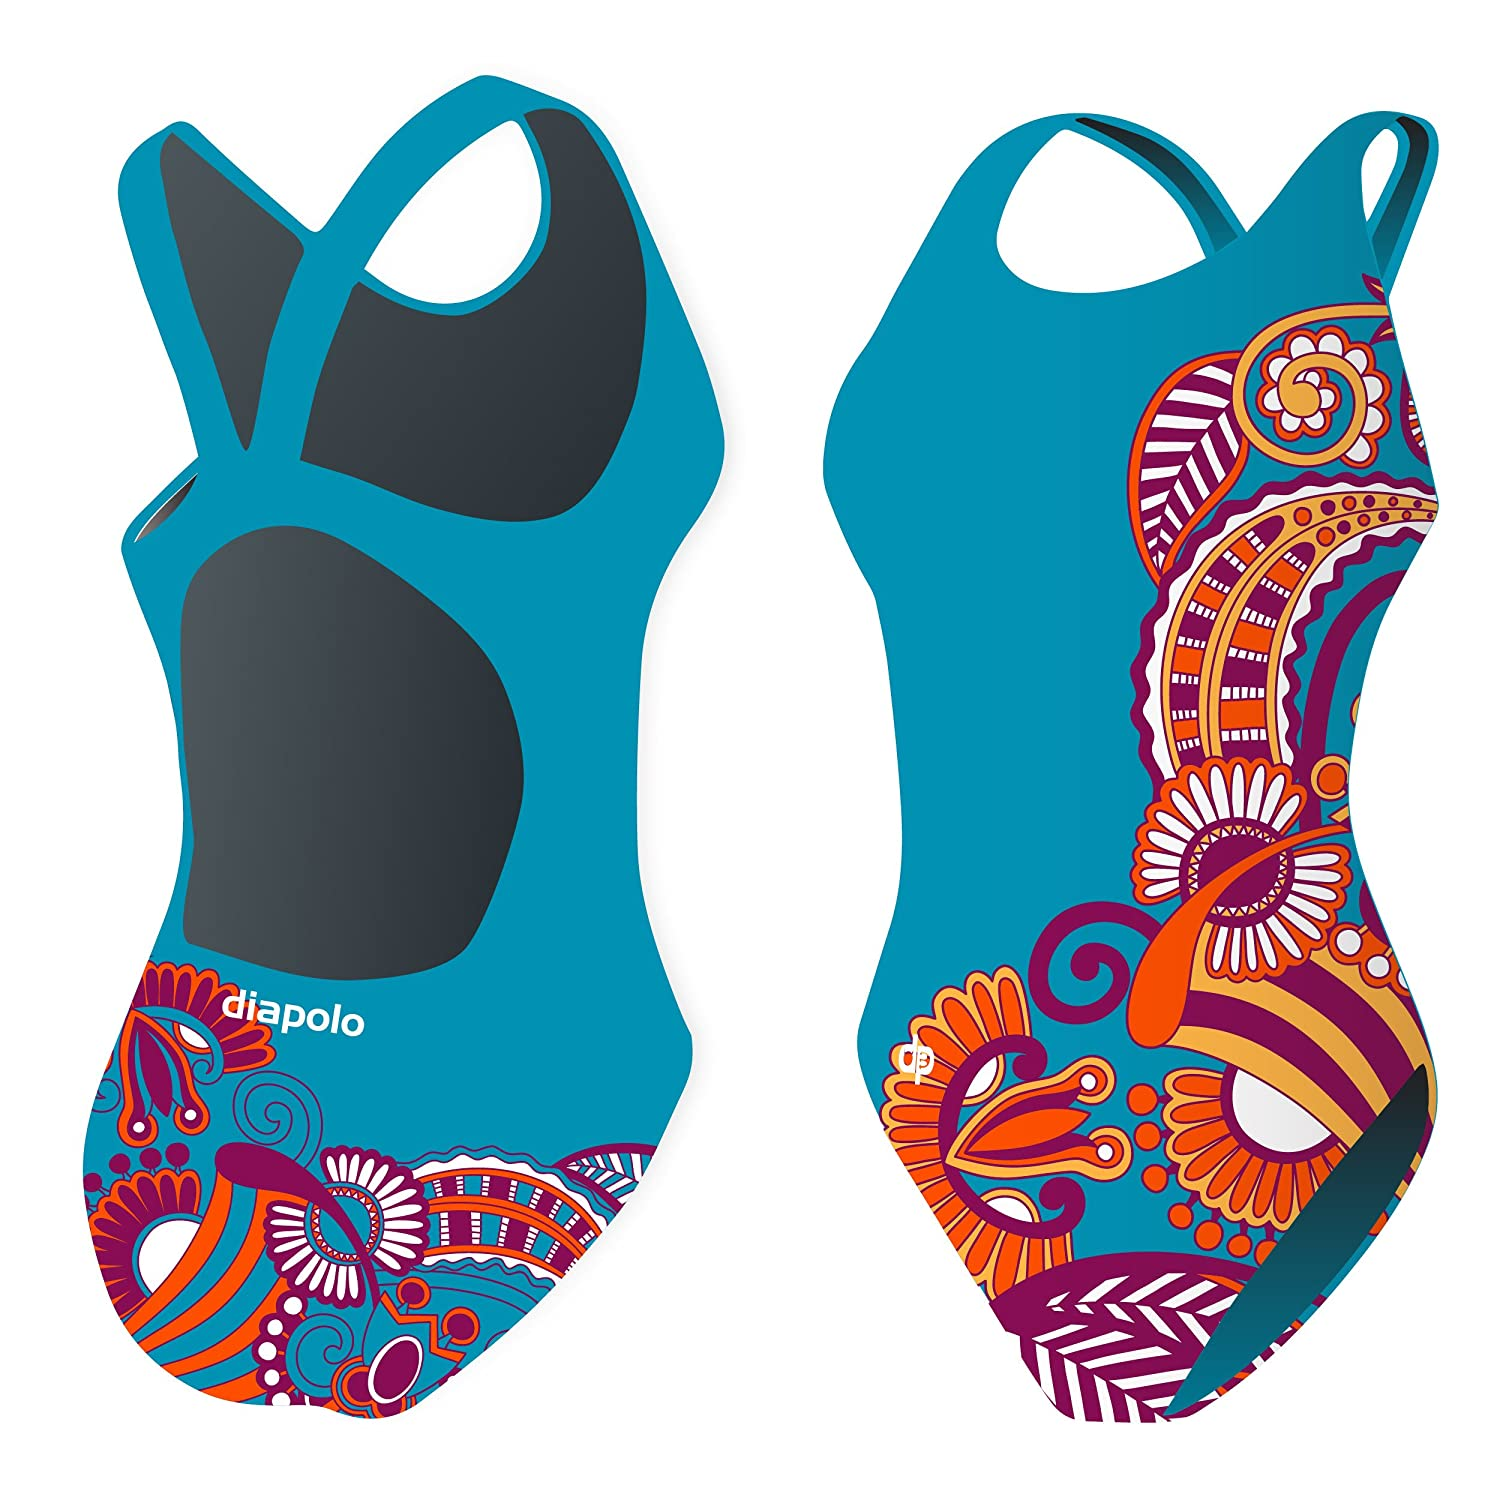 Diapolo Floral Blue Flowers Collection Swimsuit Swimming Synchronised Swimmers Beach Ball Thriathlon